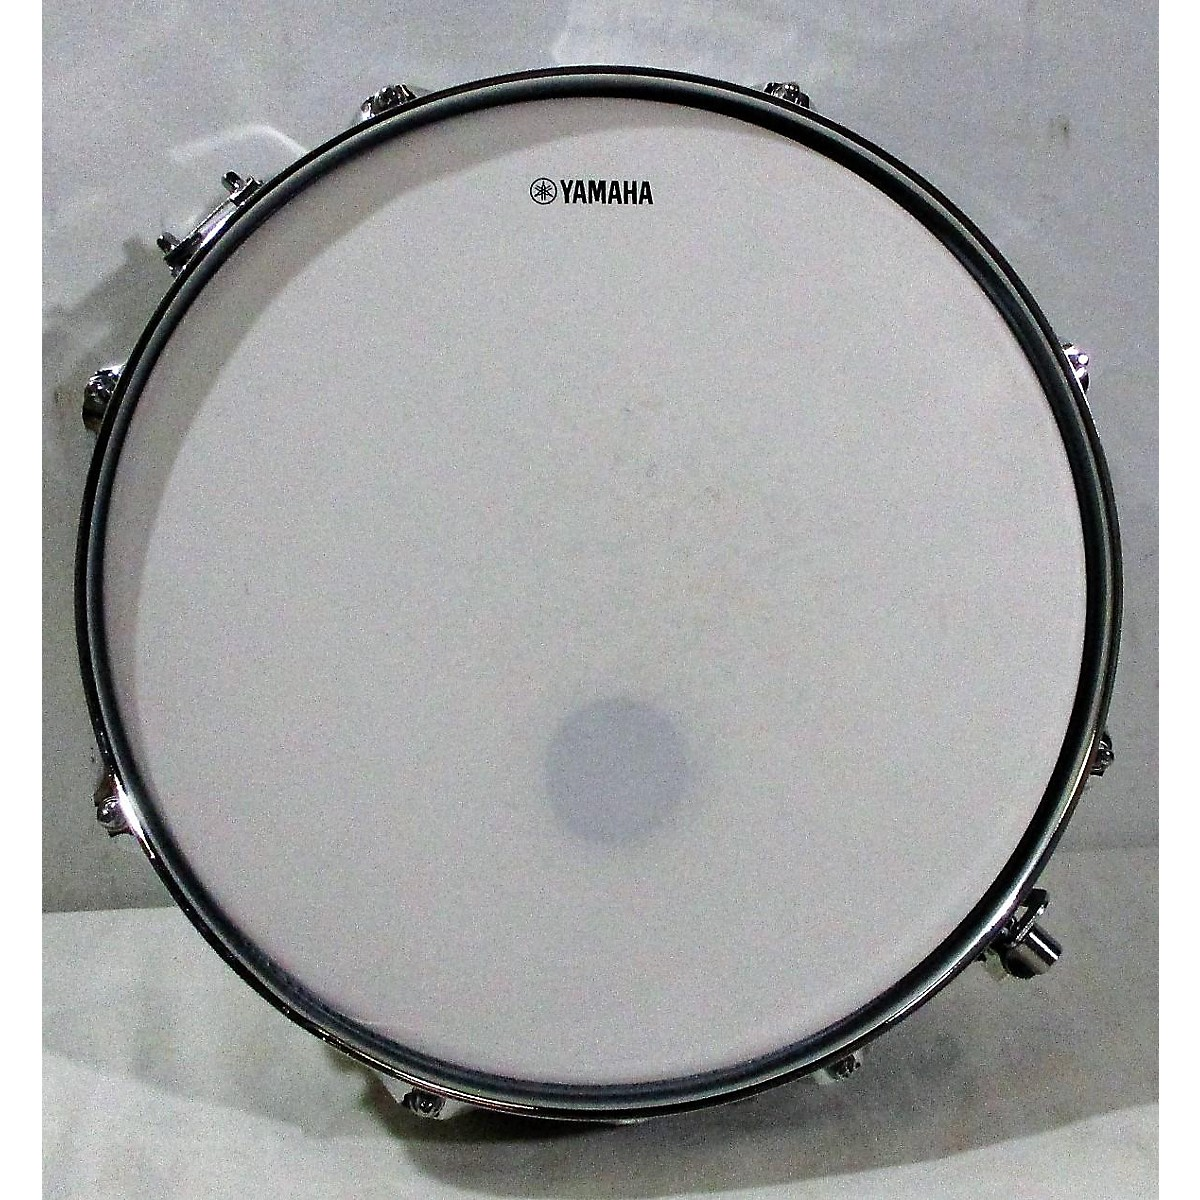 Yamaha 4X13 Piccolo Snare Drum